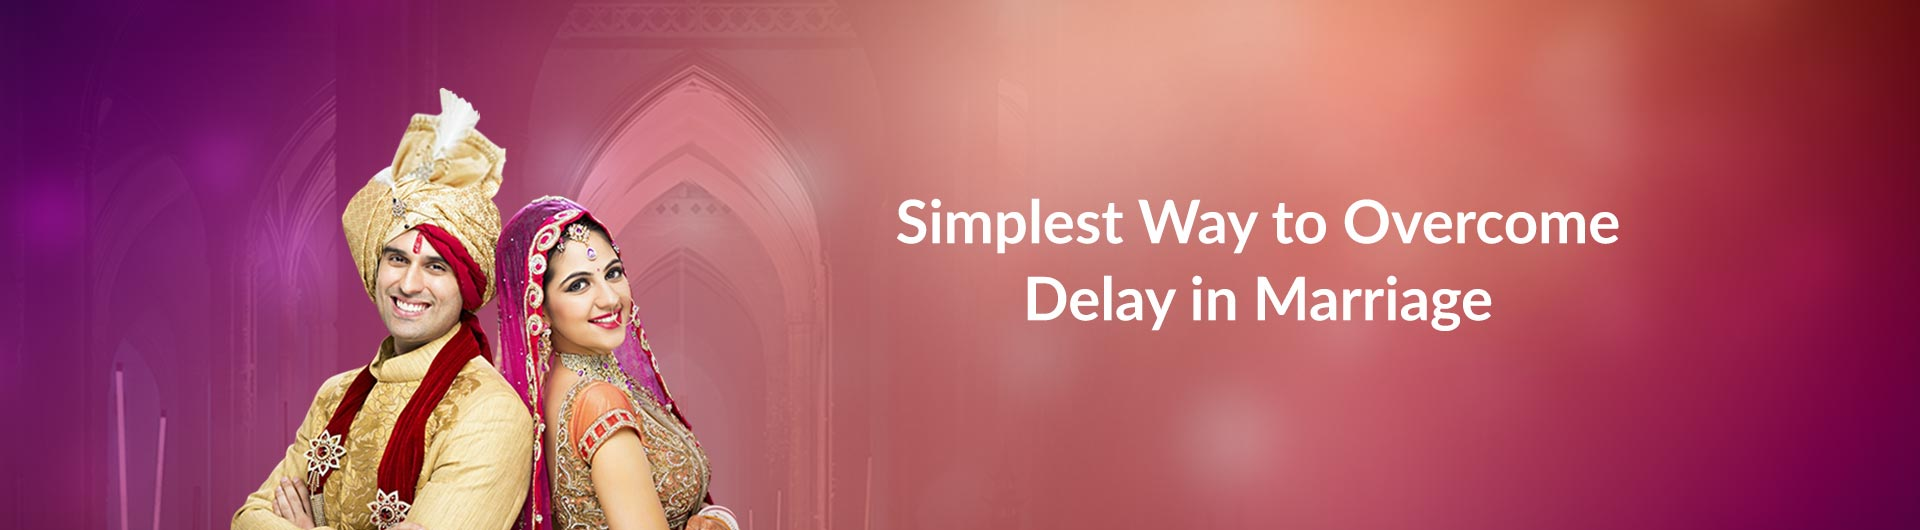 Simplest Way to Overcome Delay in Marriage